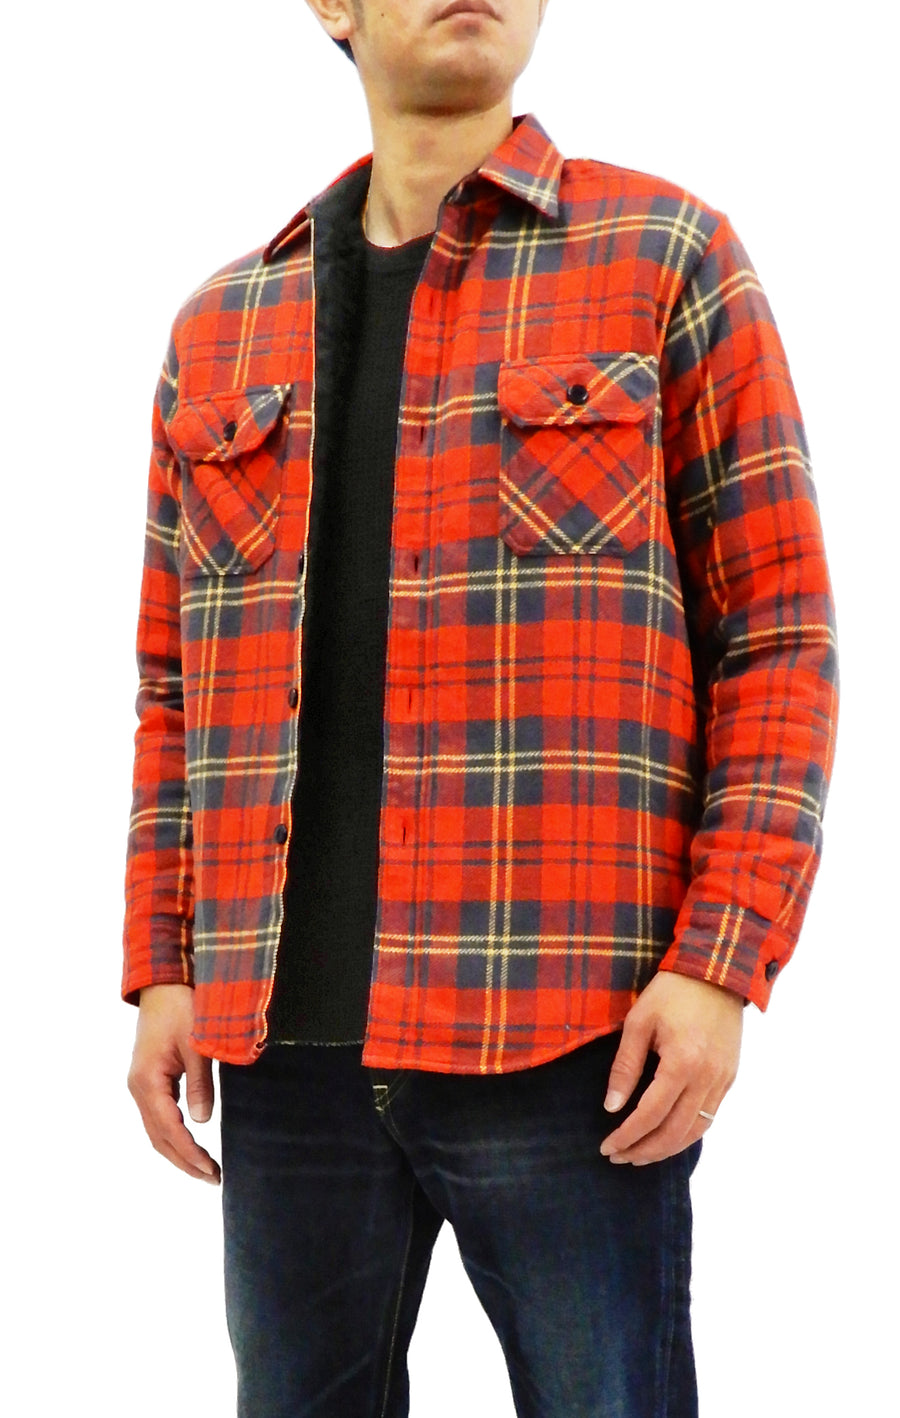 Sugar Cane Men's Sherpa Lined Shirt Jacket Twill Check Plaid Long Sleeve SC14282 Red